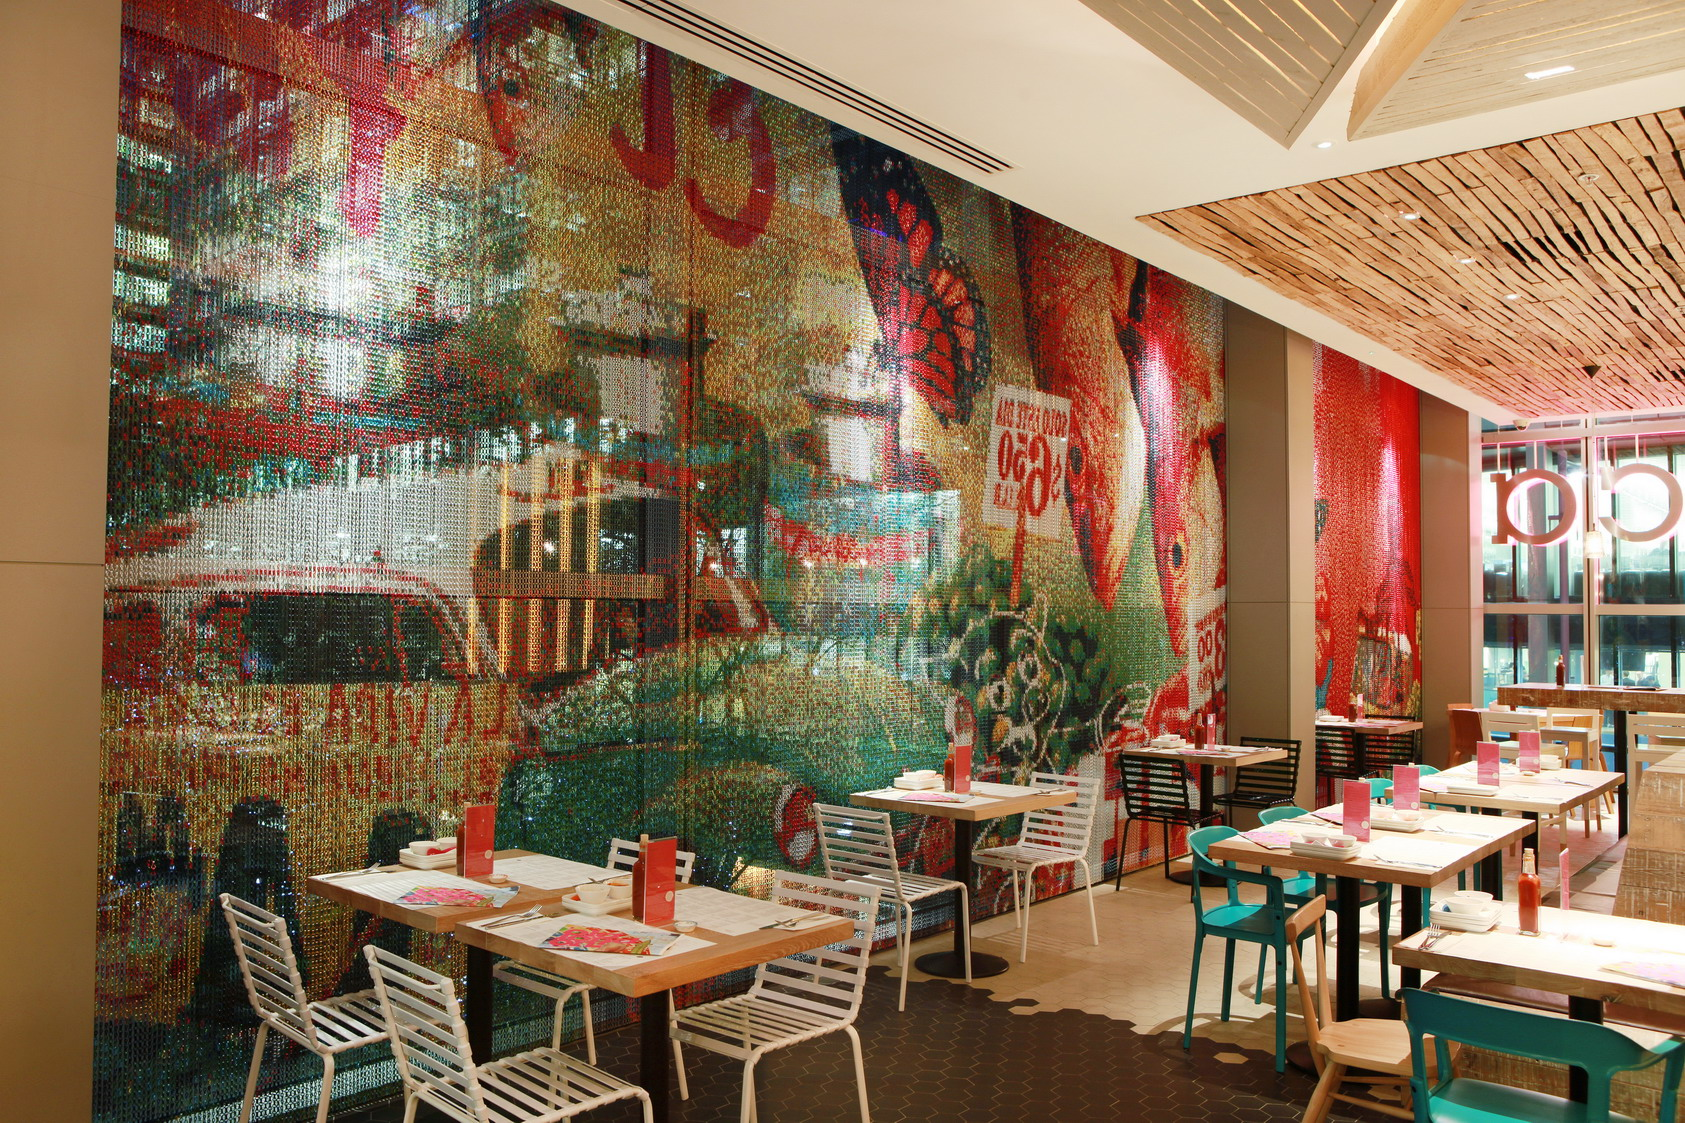 Interior of the new branch of Wahaca in Canary Wharf. 12/11/09©Alex Maguire.